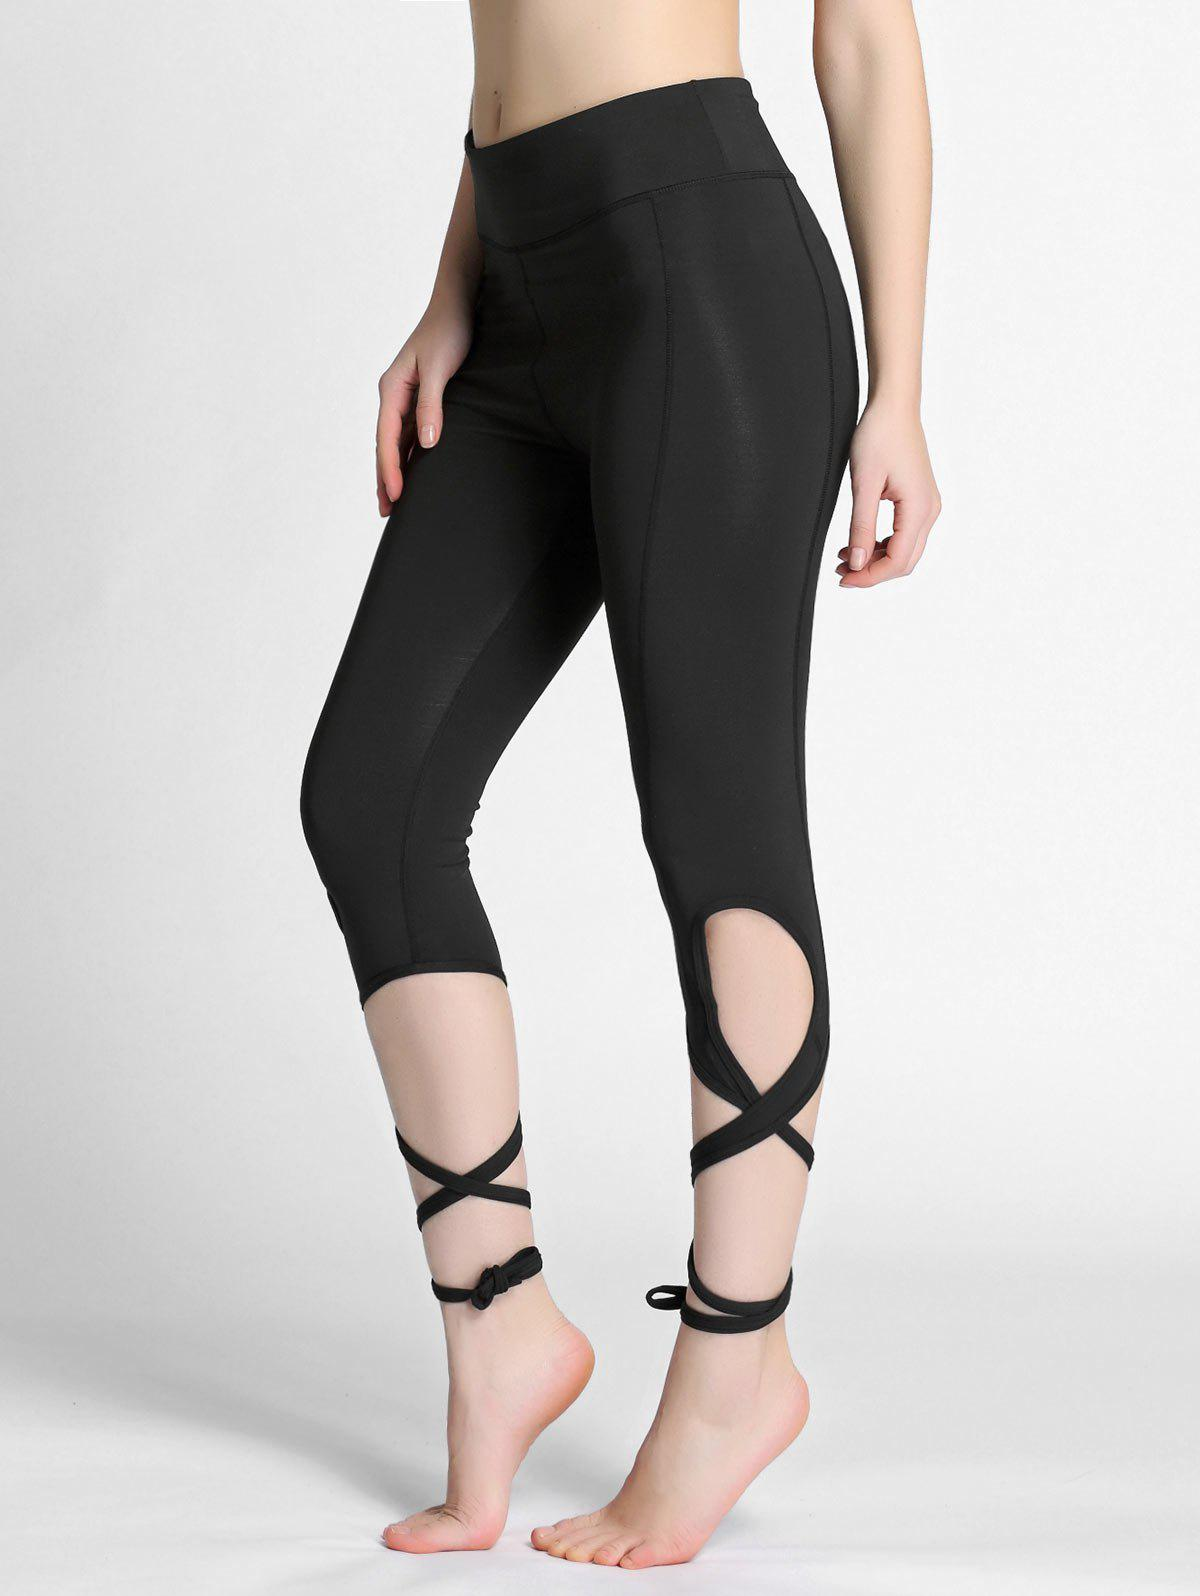 f0524fa1f82fe 12% OFF] High Waisted Lace Up Gym Leggings | Rosegal